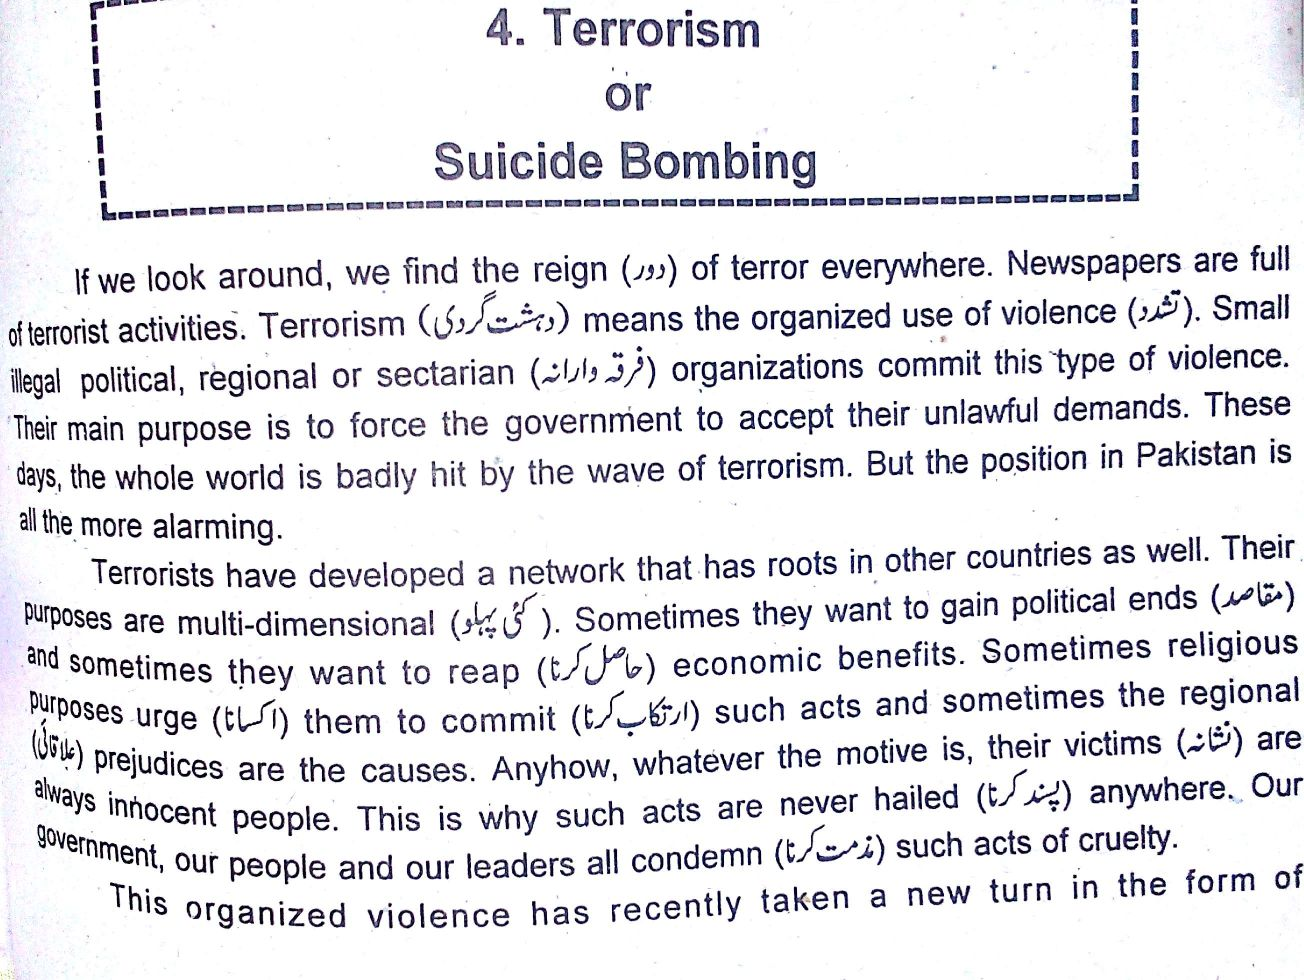 thesis on suicide bombing Surviving a suicide bombing where you stand matters: the two researchers have developed accurate physics-based models of a suicide bombing attack, including casualty levels and explosive composition.